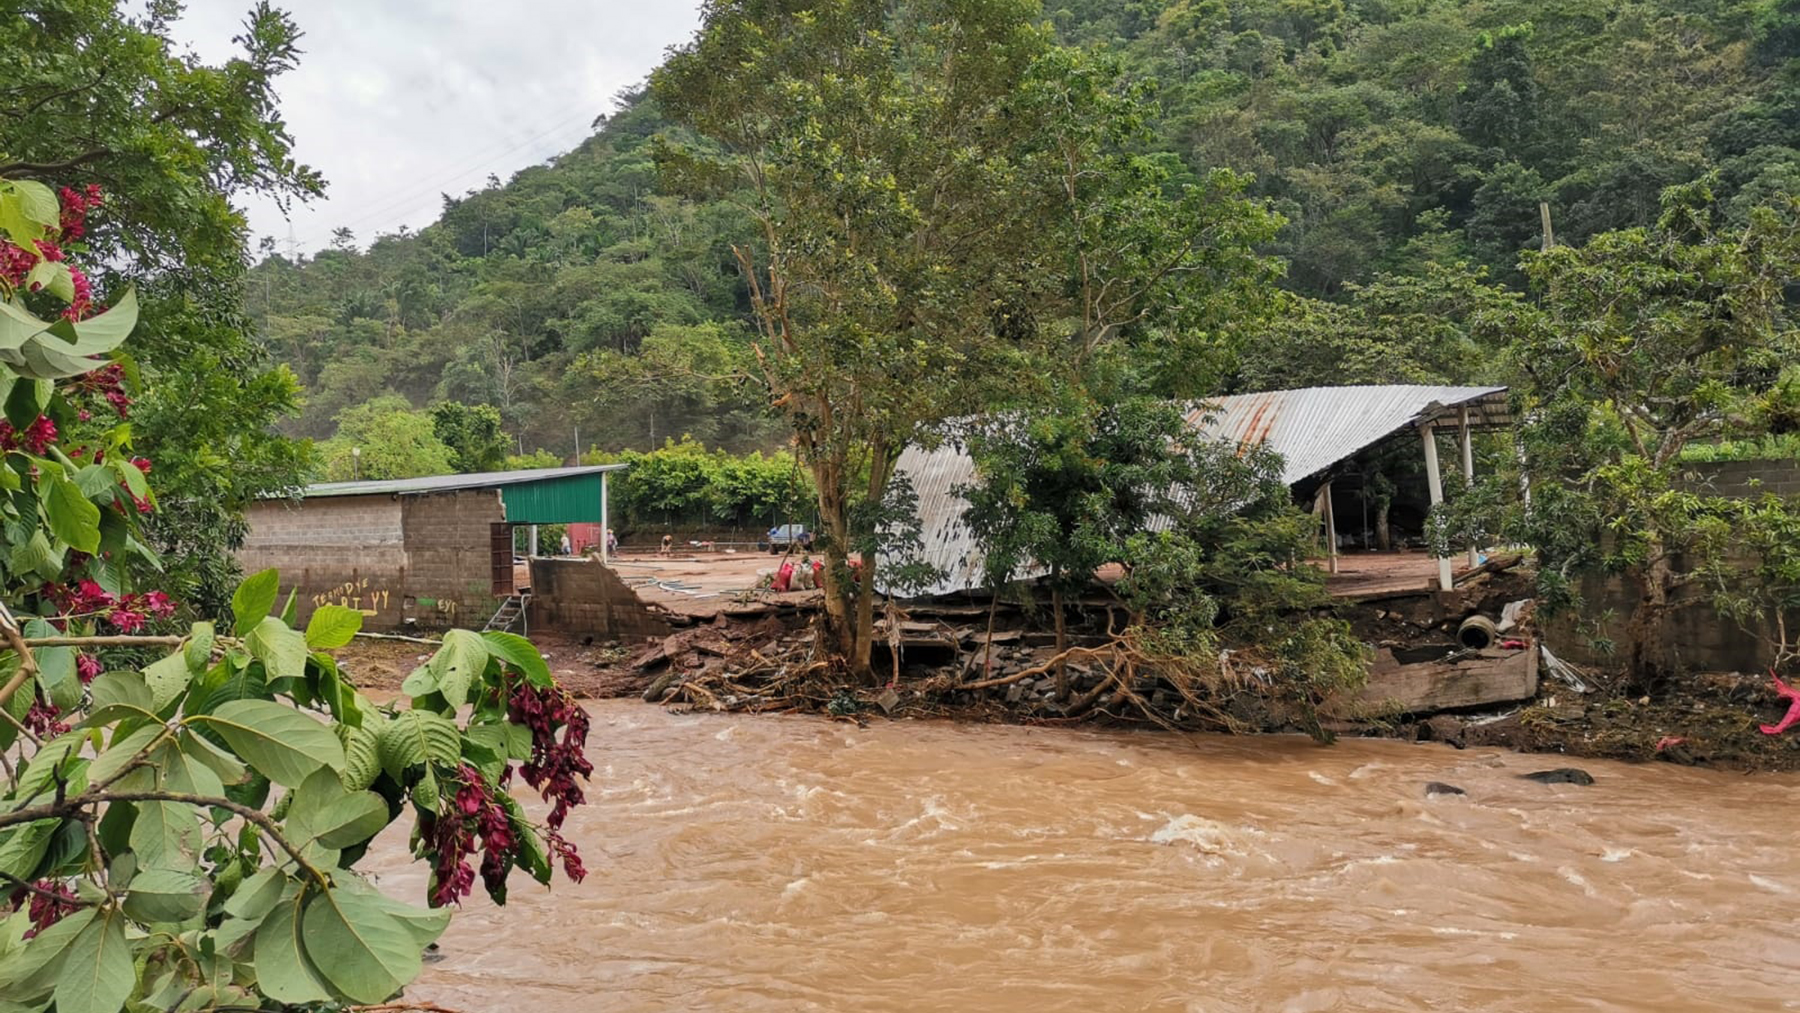 Flooding in Honduras's Sula Valley in the wake of Hurricanes Eta and Iota. (Photo courtesy of Proyecto Aldea Global)